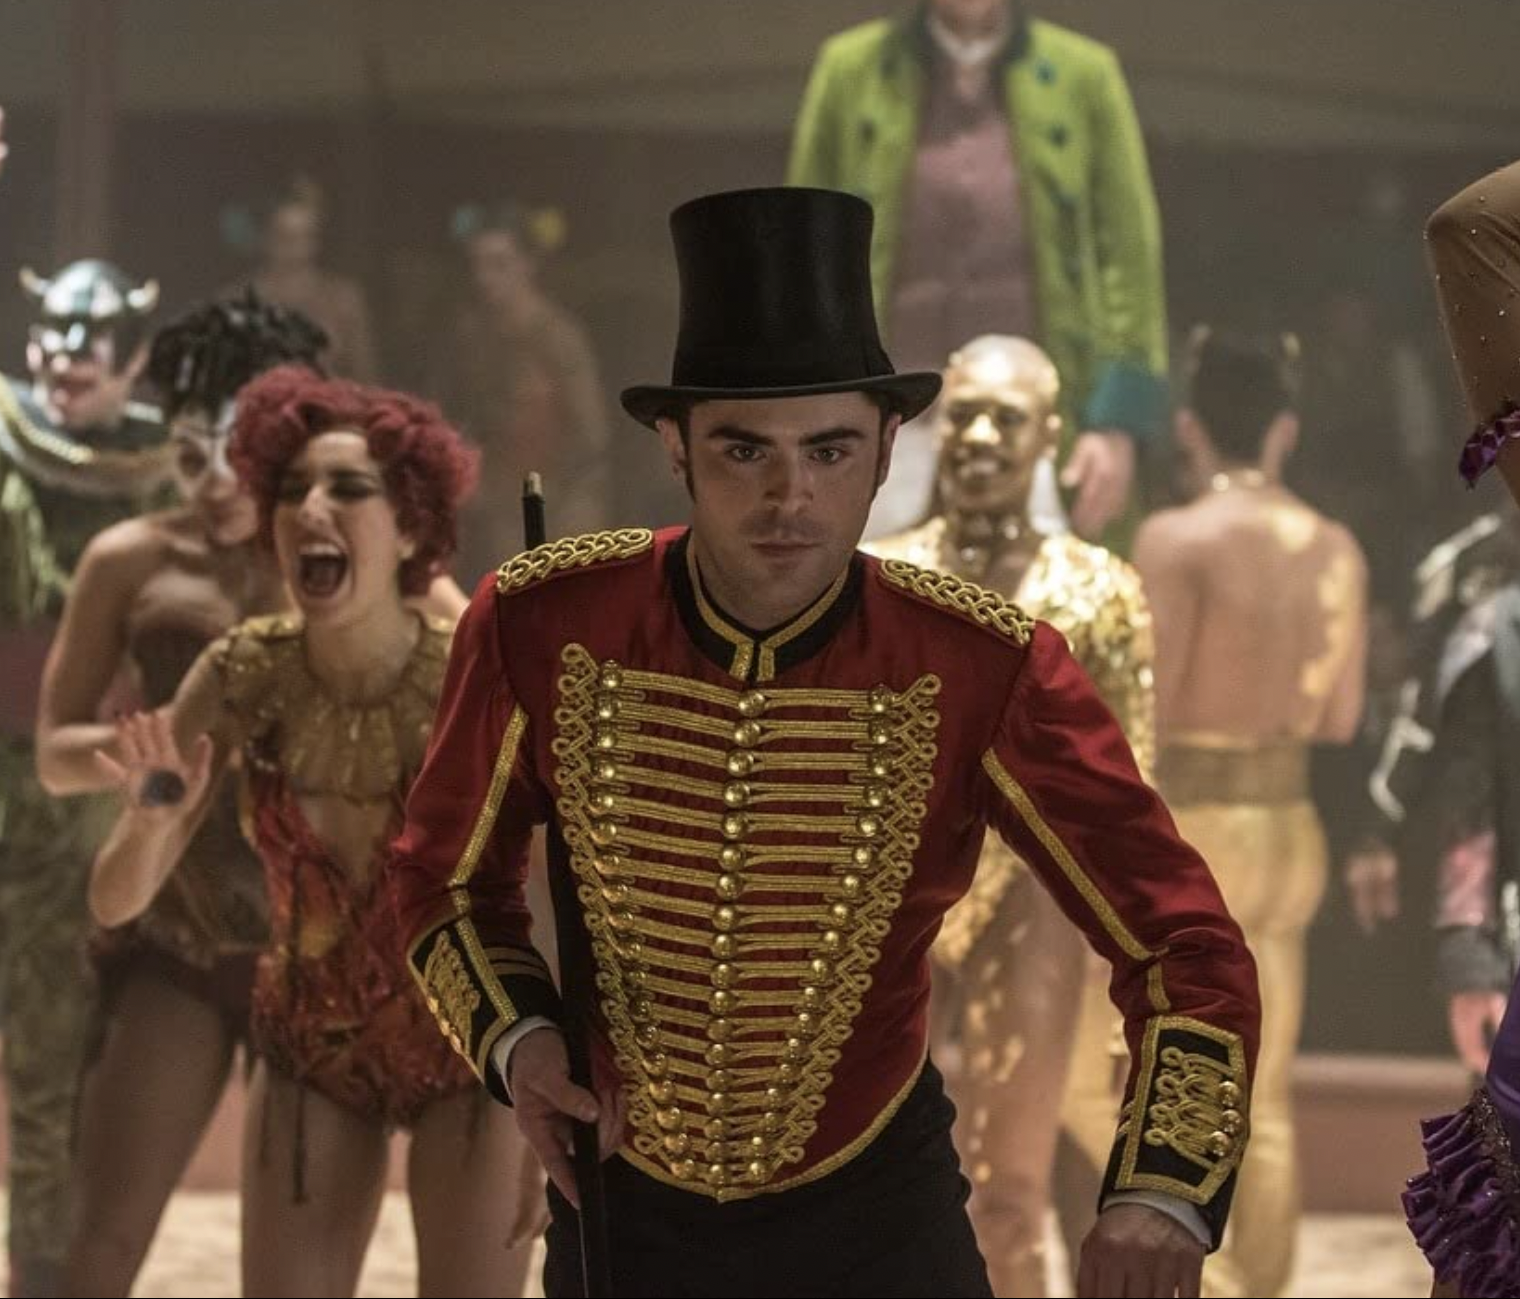 Screenshot 2021 05 20 at 11.50.29 e1621507885446 30 Things You Didn't Know About The Greatest Showman